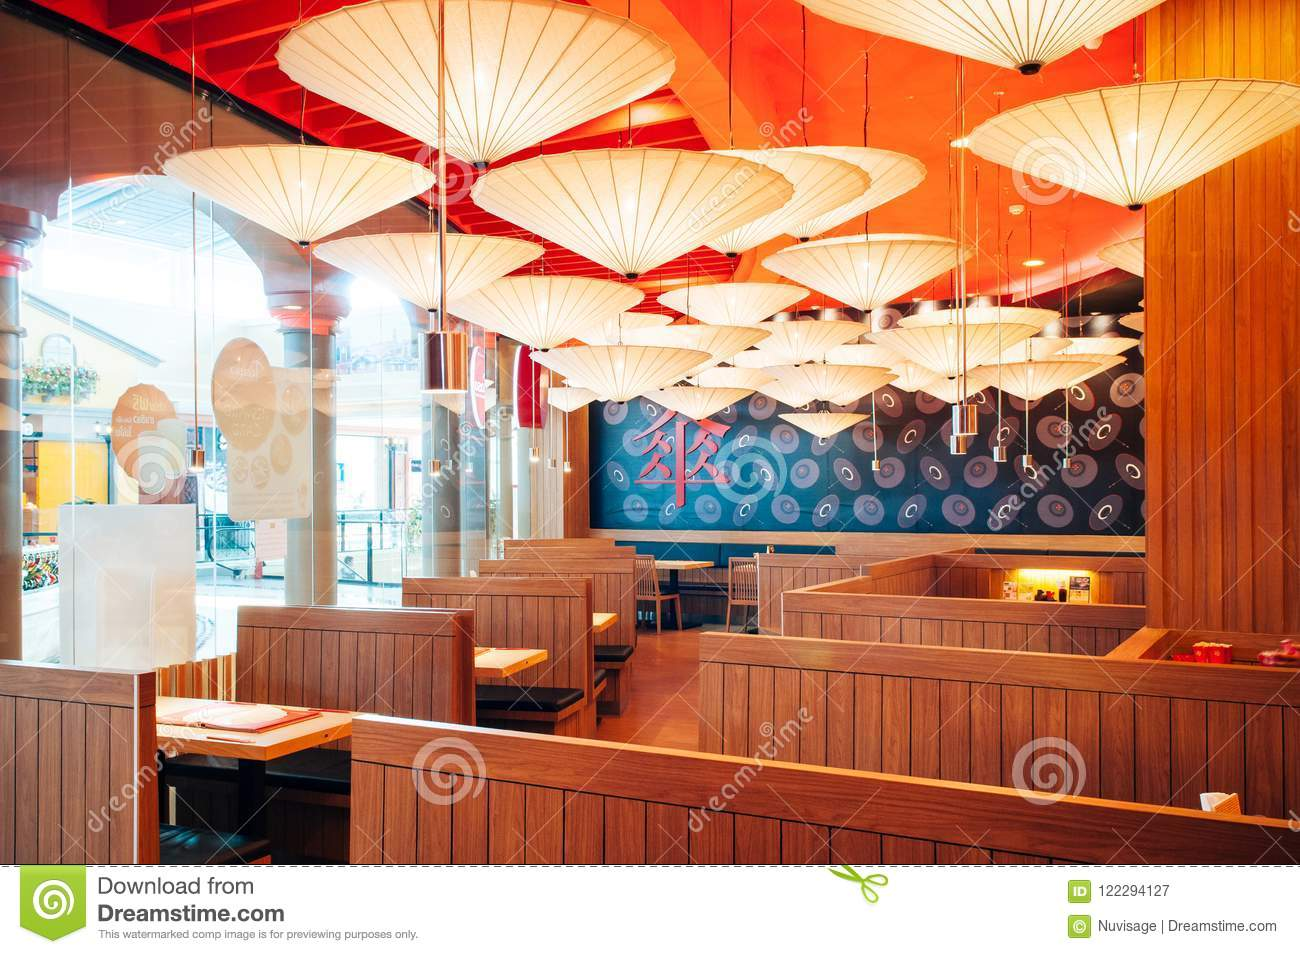 Vibrant Japanese Restaurant Interior Decorated Ceiling With Pap Editorial Photography Image Of Modern Architectural 122294127